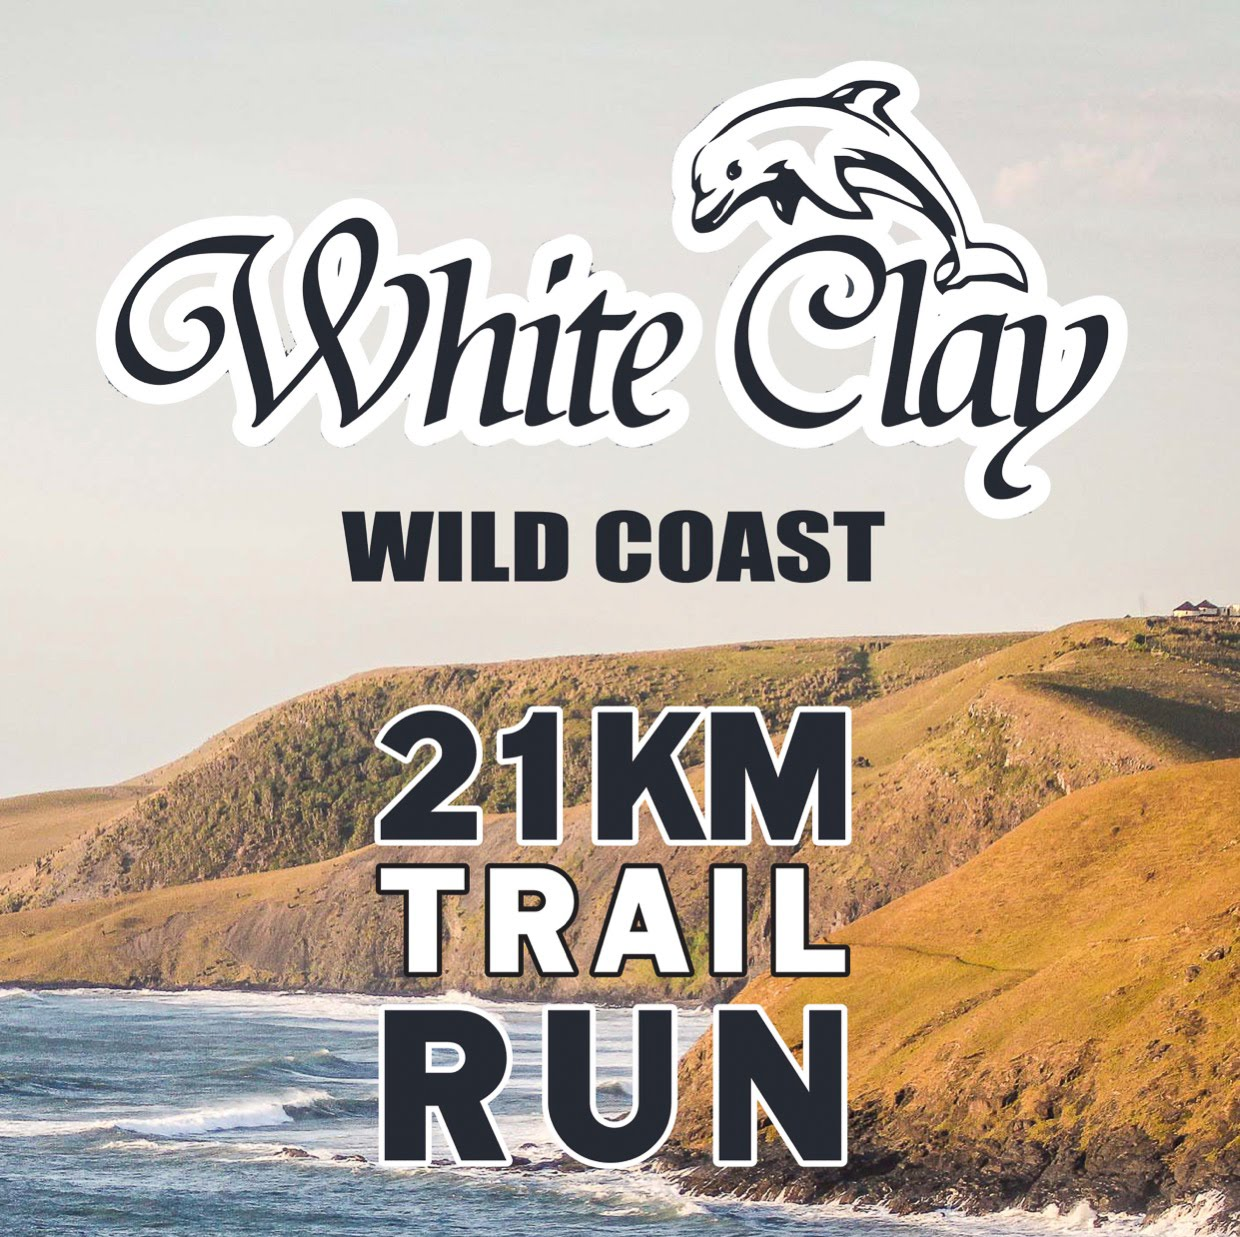 White Clay Trail Run 2017